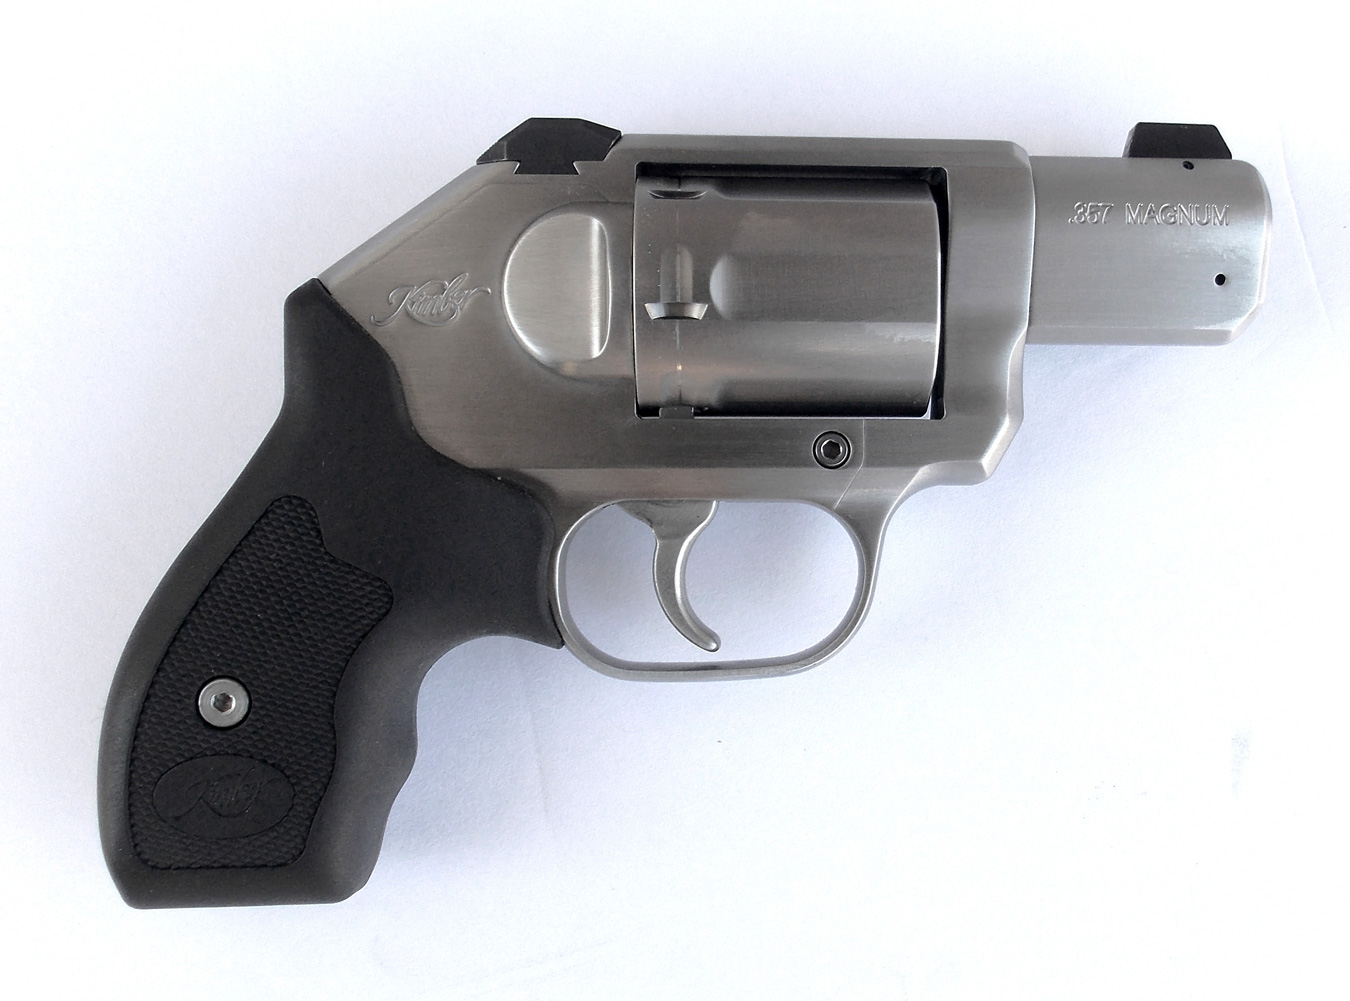 Kimber K6s revolver right profile